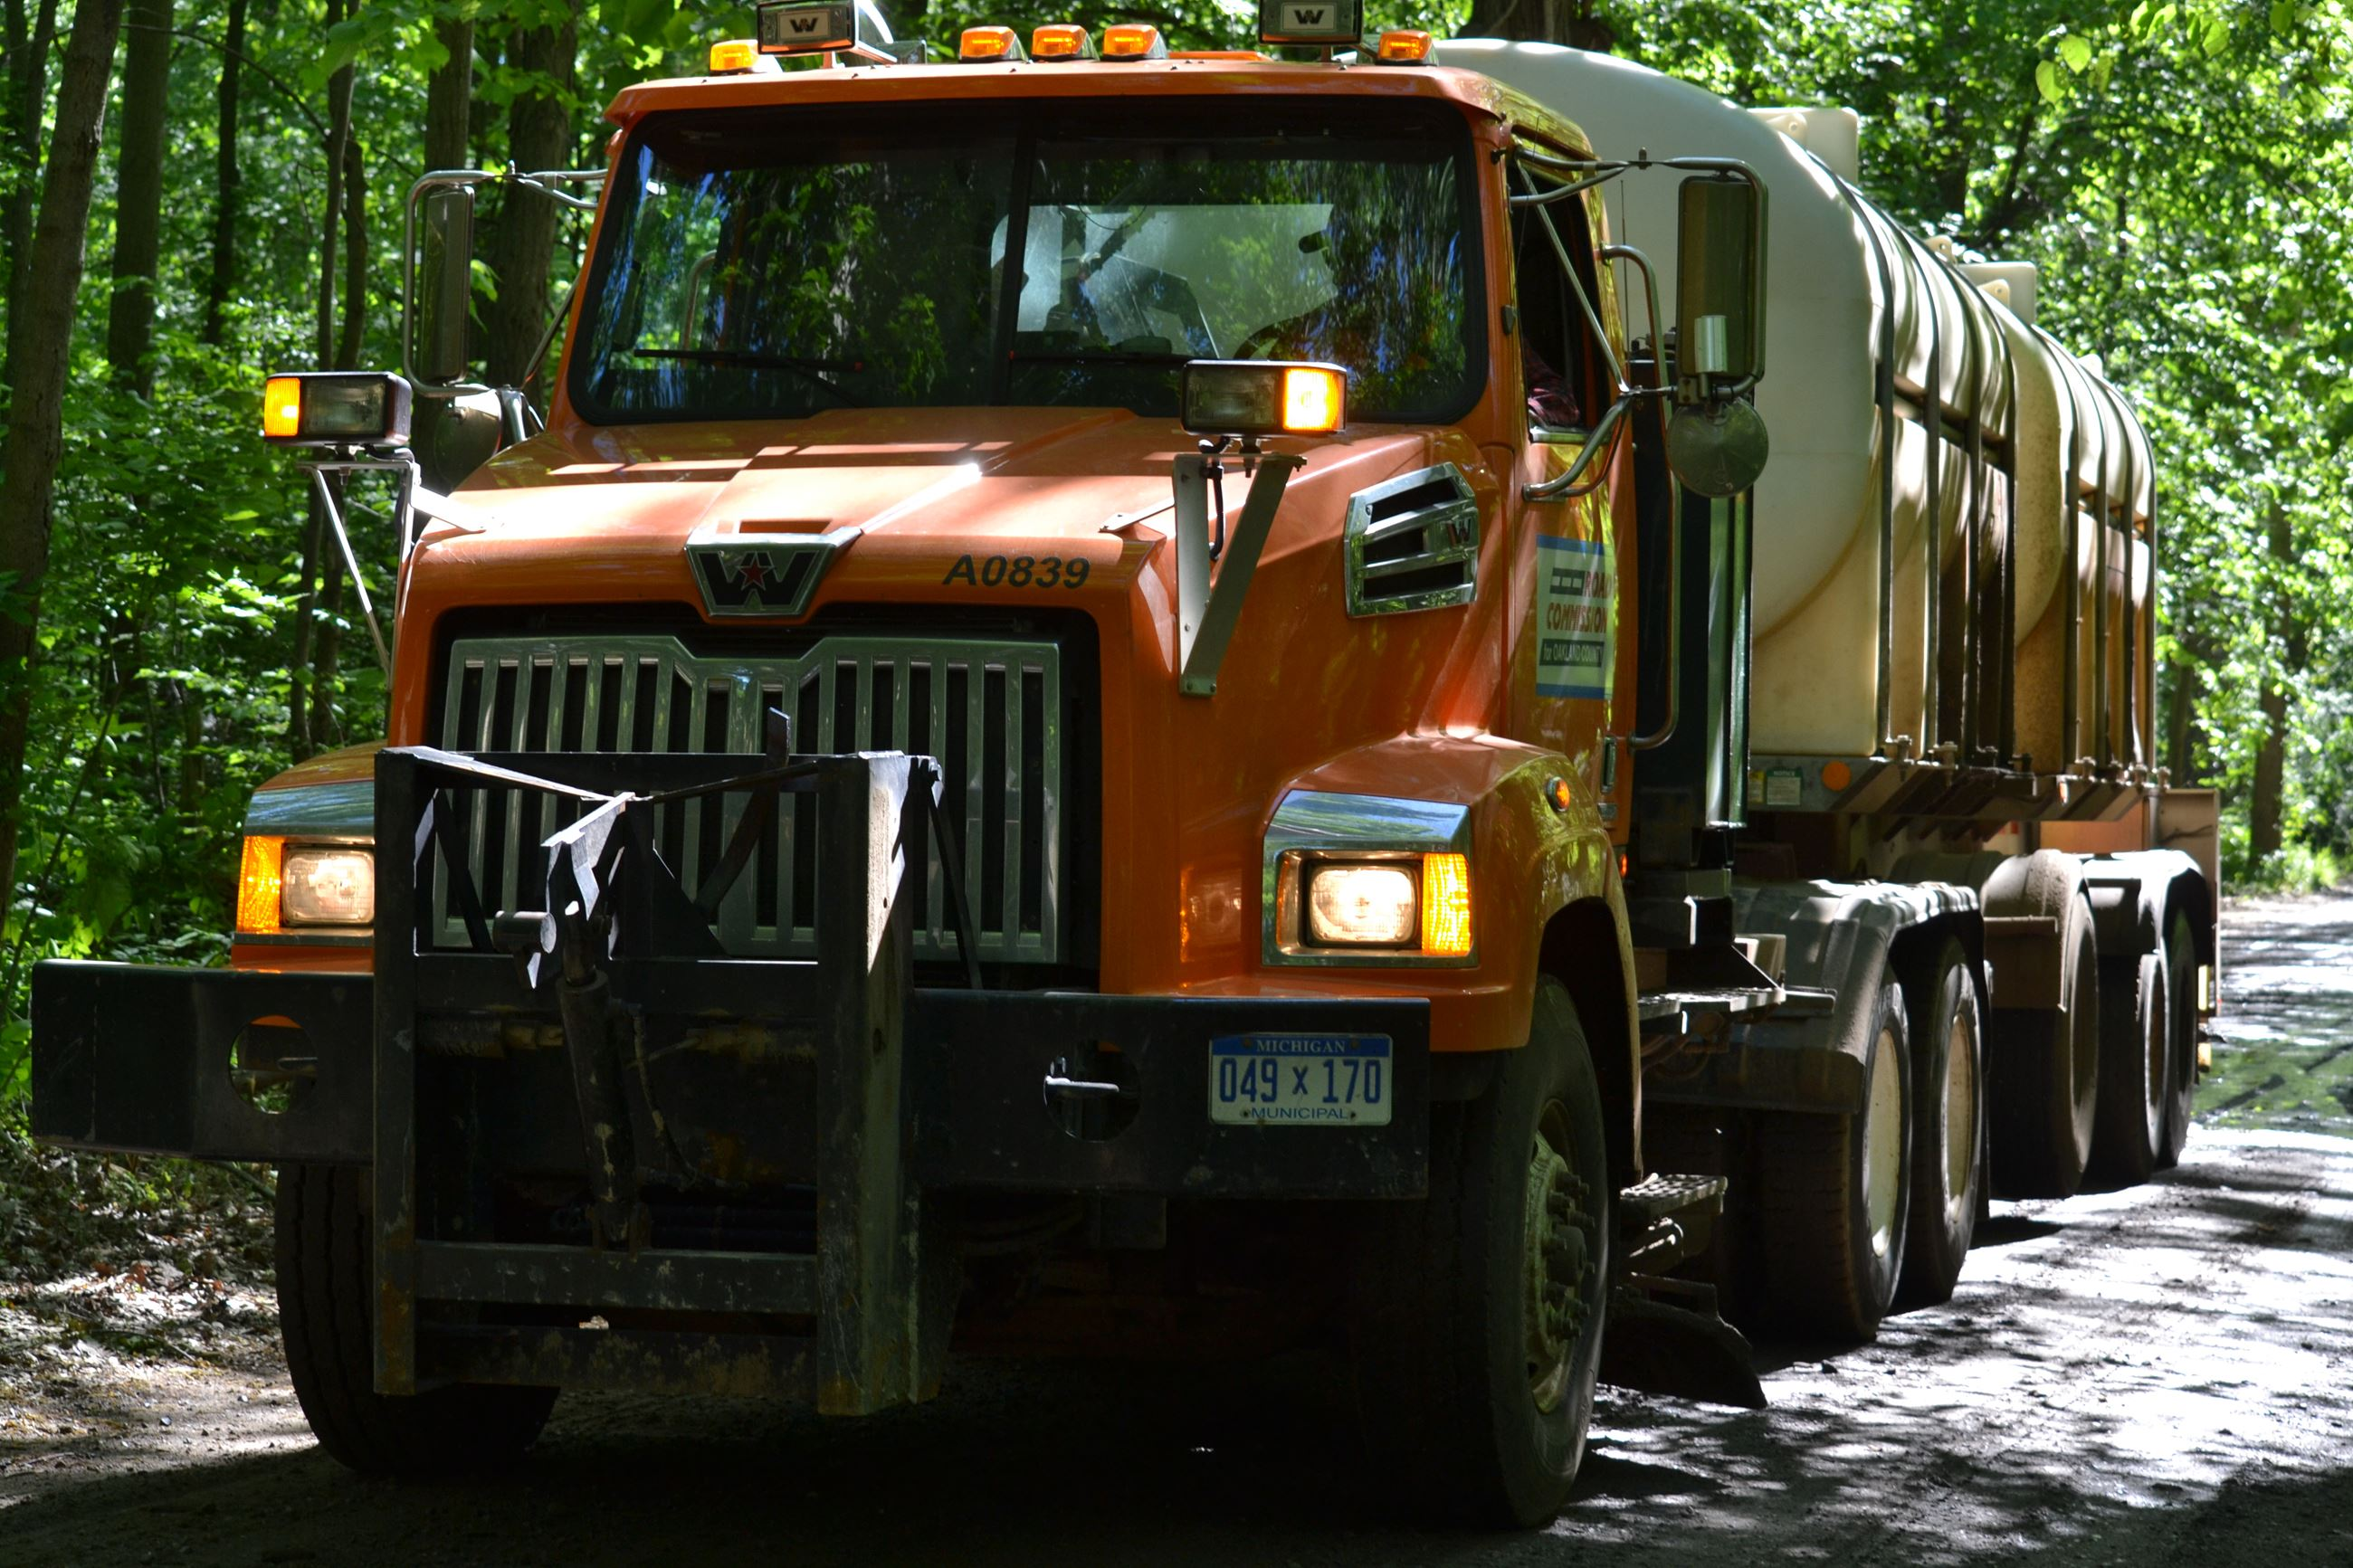 RCOC truck applying brine to a gravel road